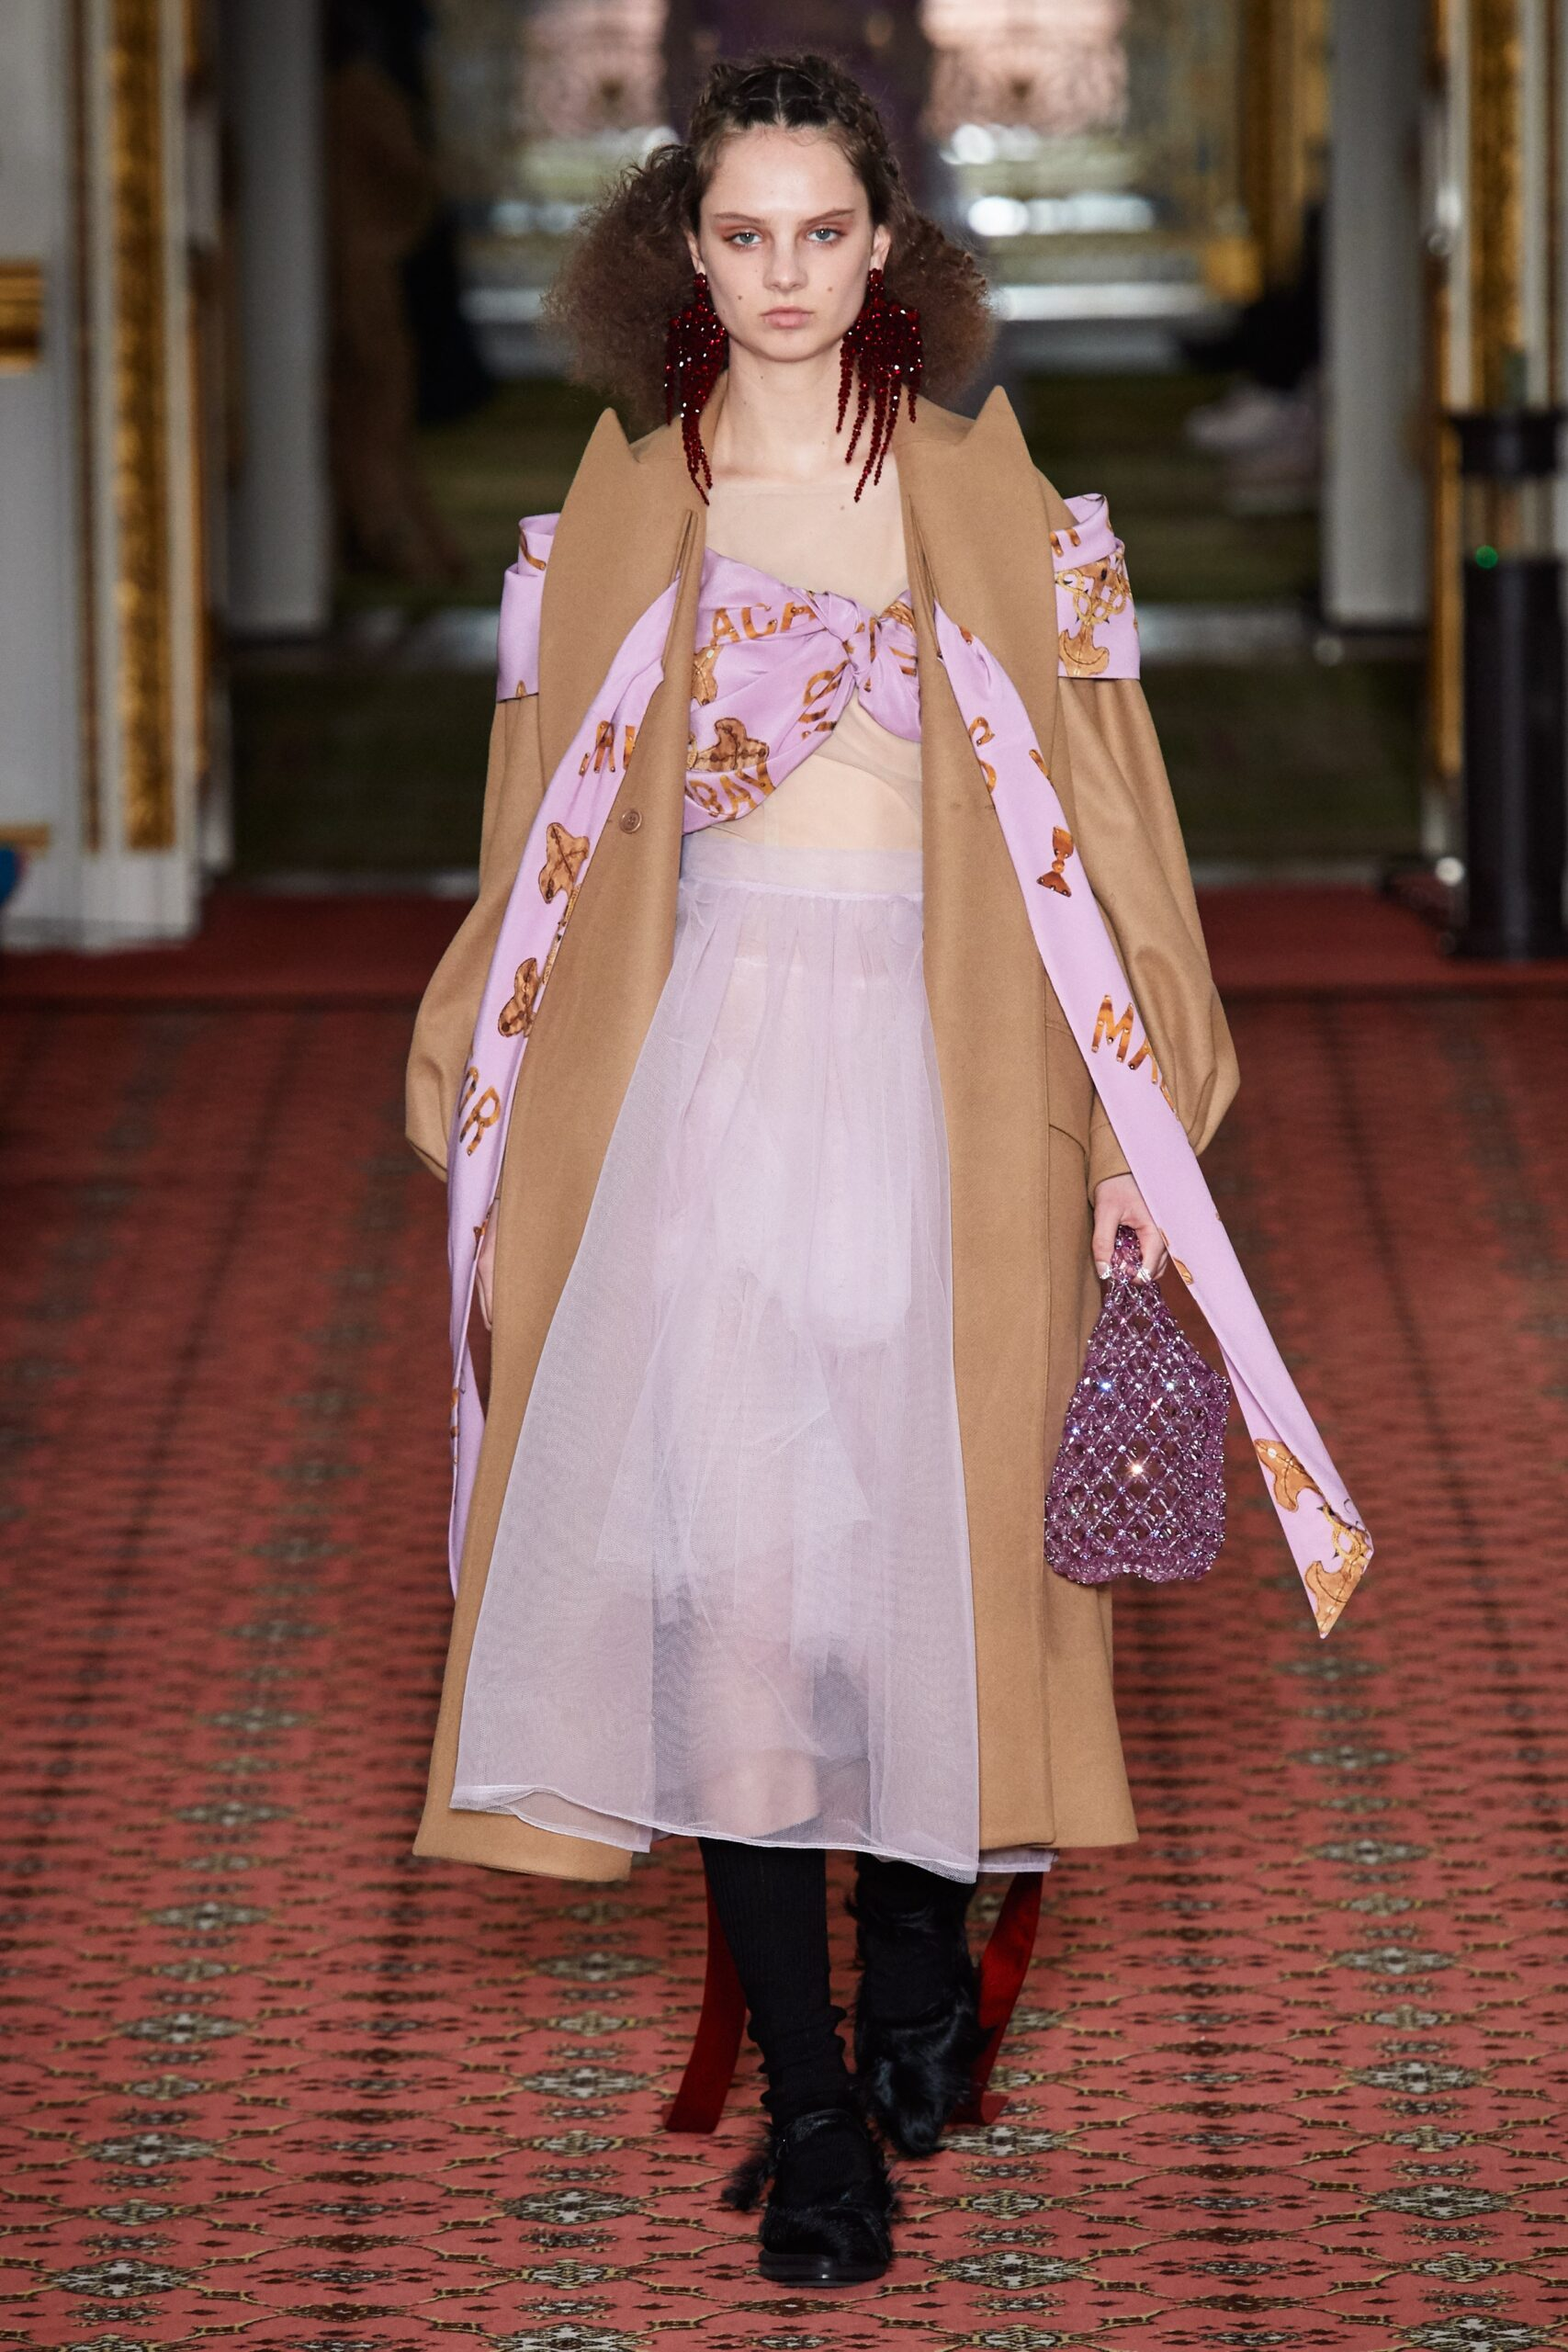 Simone Rocha Fall 2020 ready-to-wear